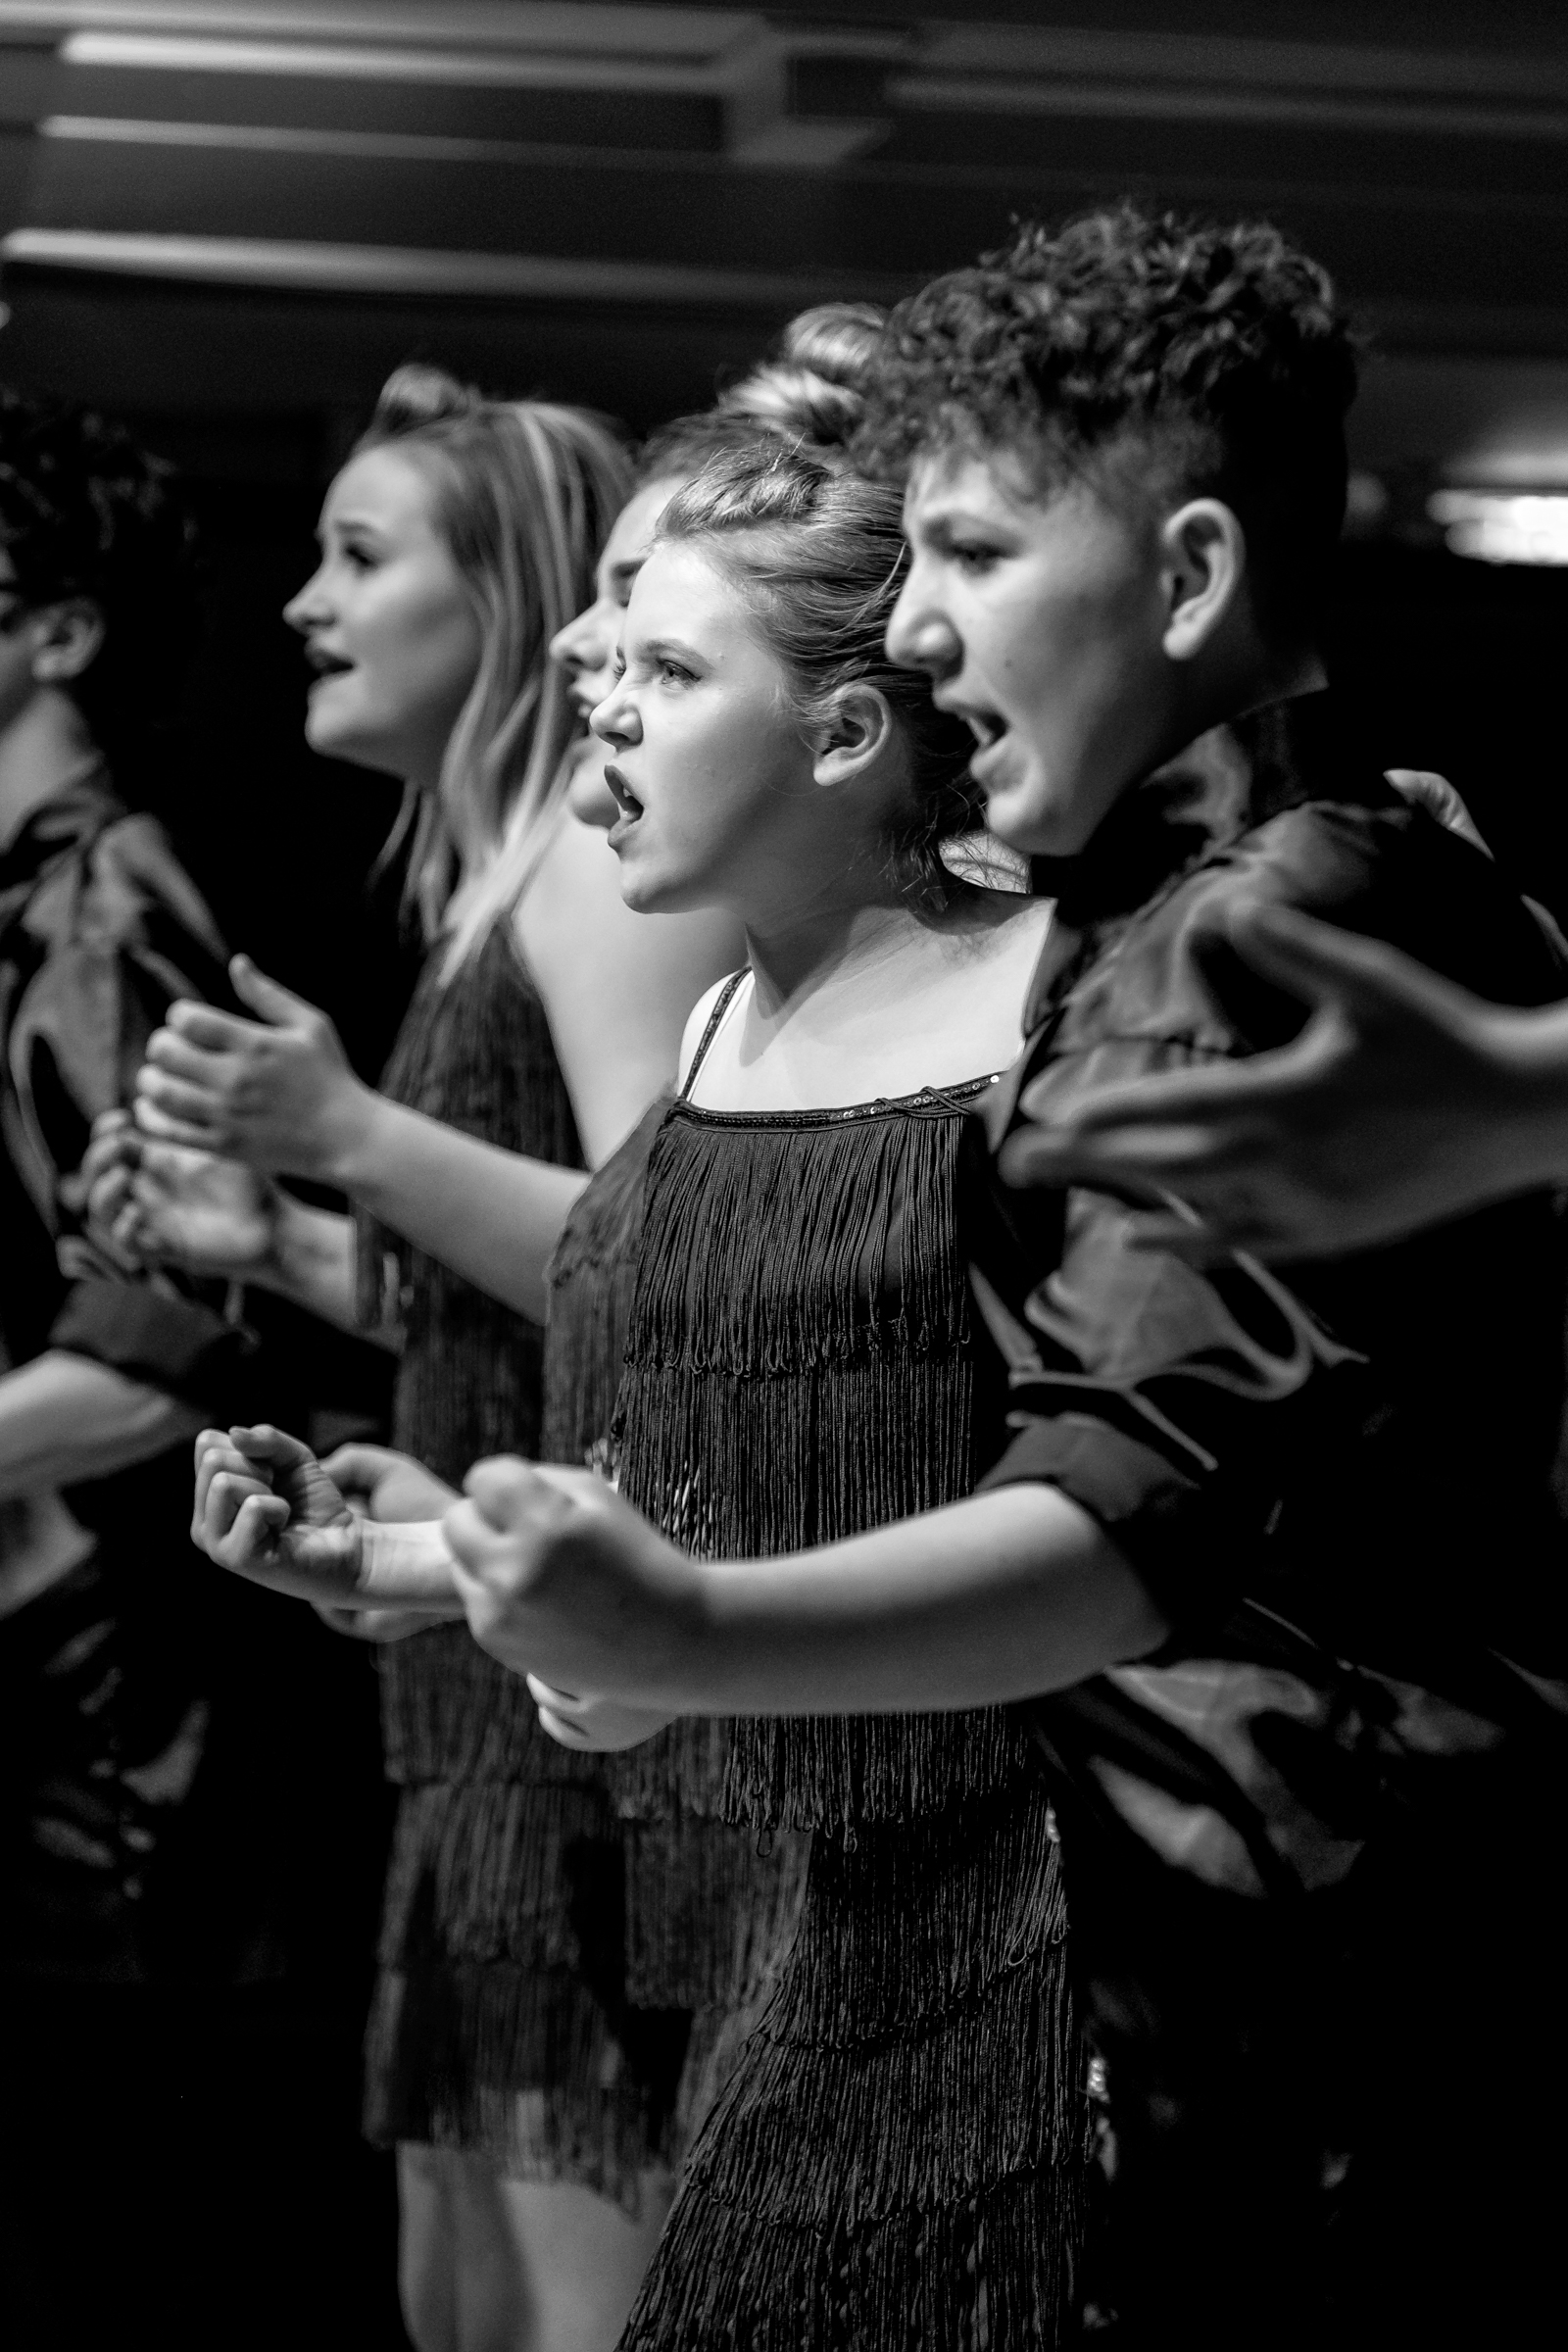 Amplify performing at St George's Bristol. Photo by Stewart McPherson